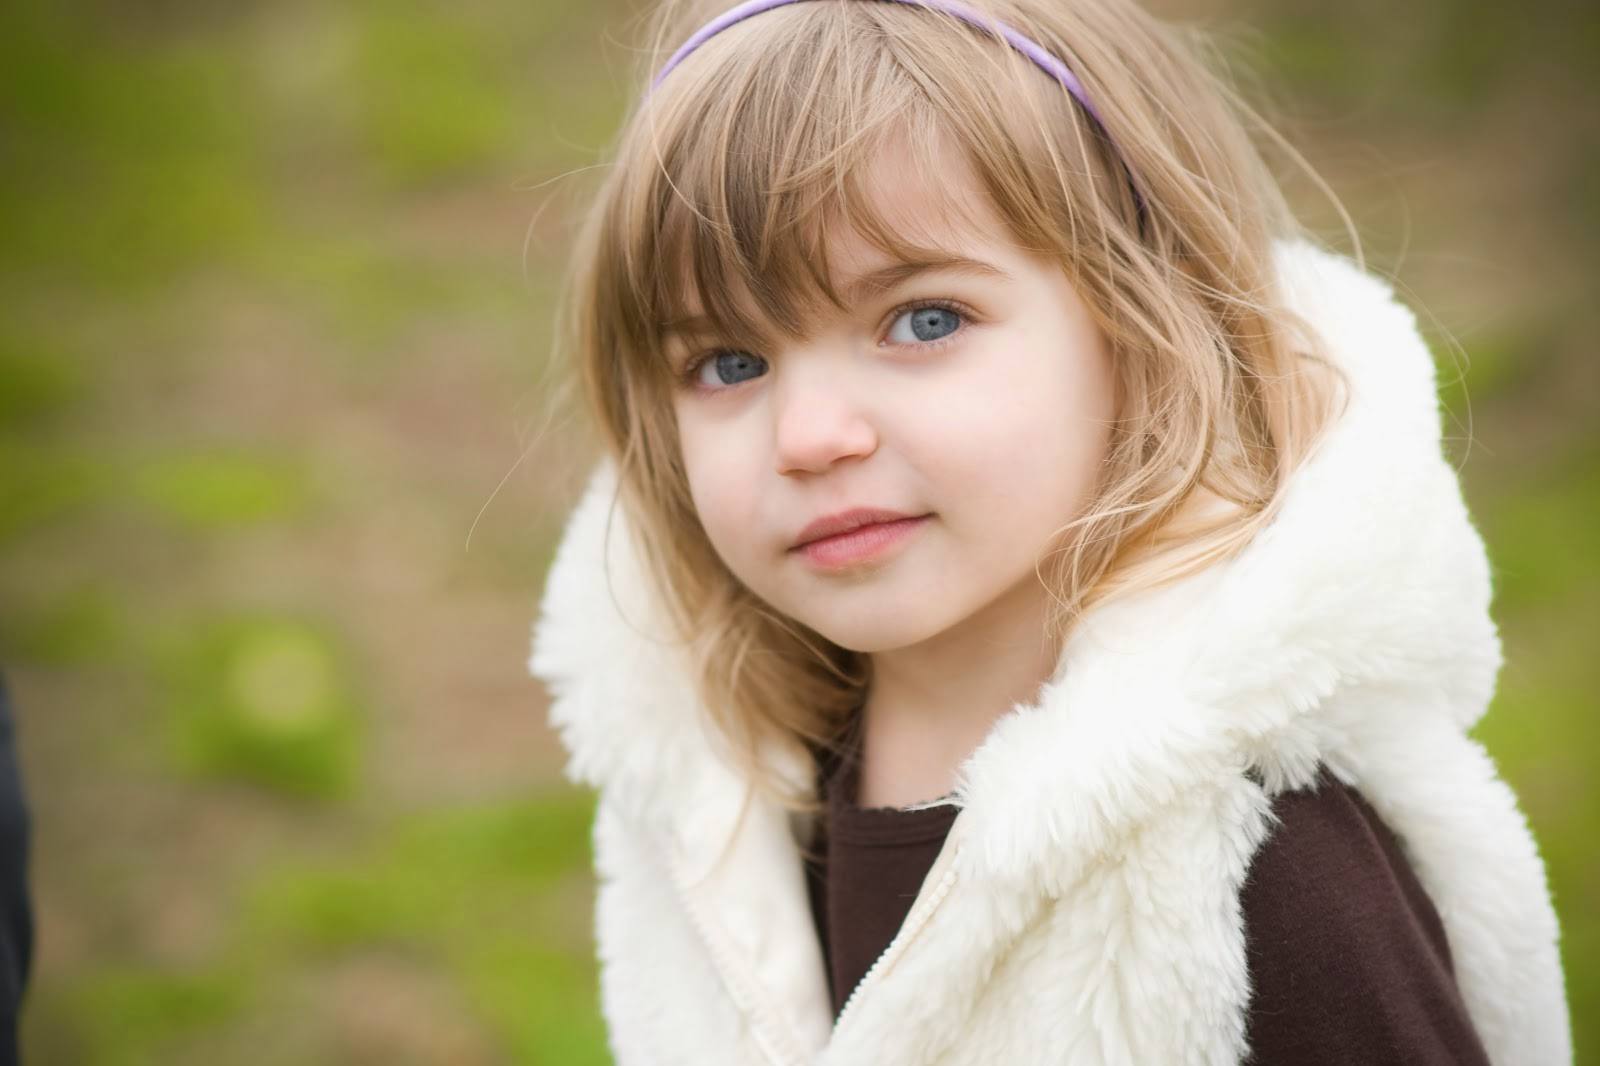 cute baby girls with blue eyes image | cute baby wallpapers